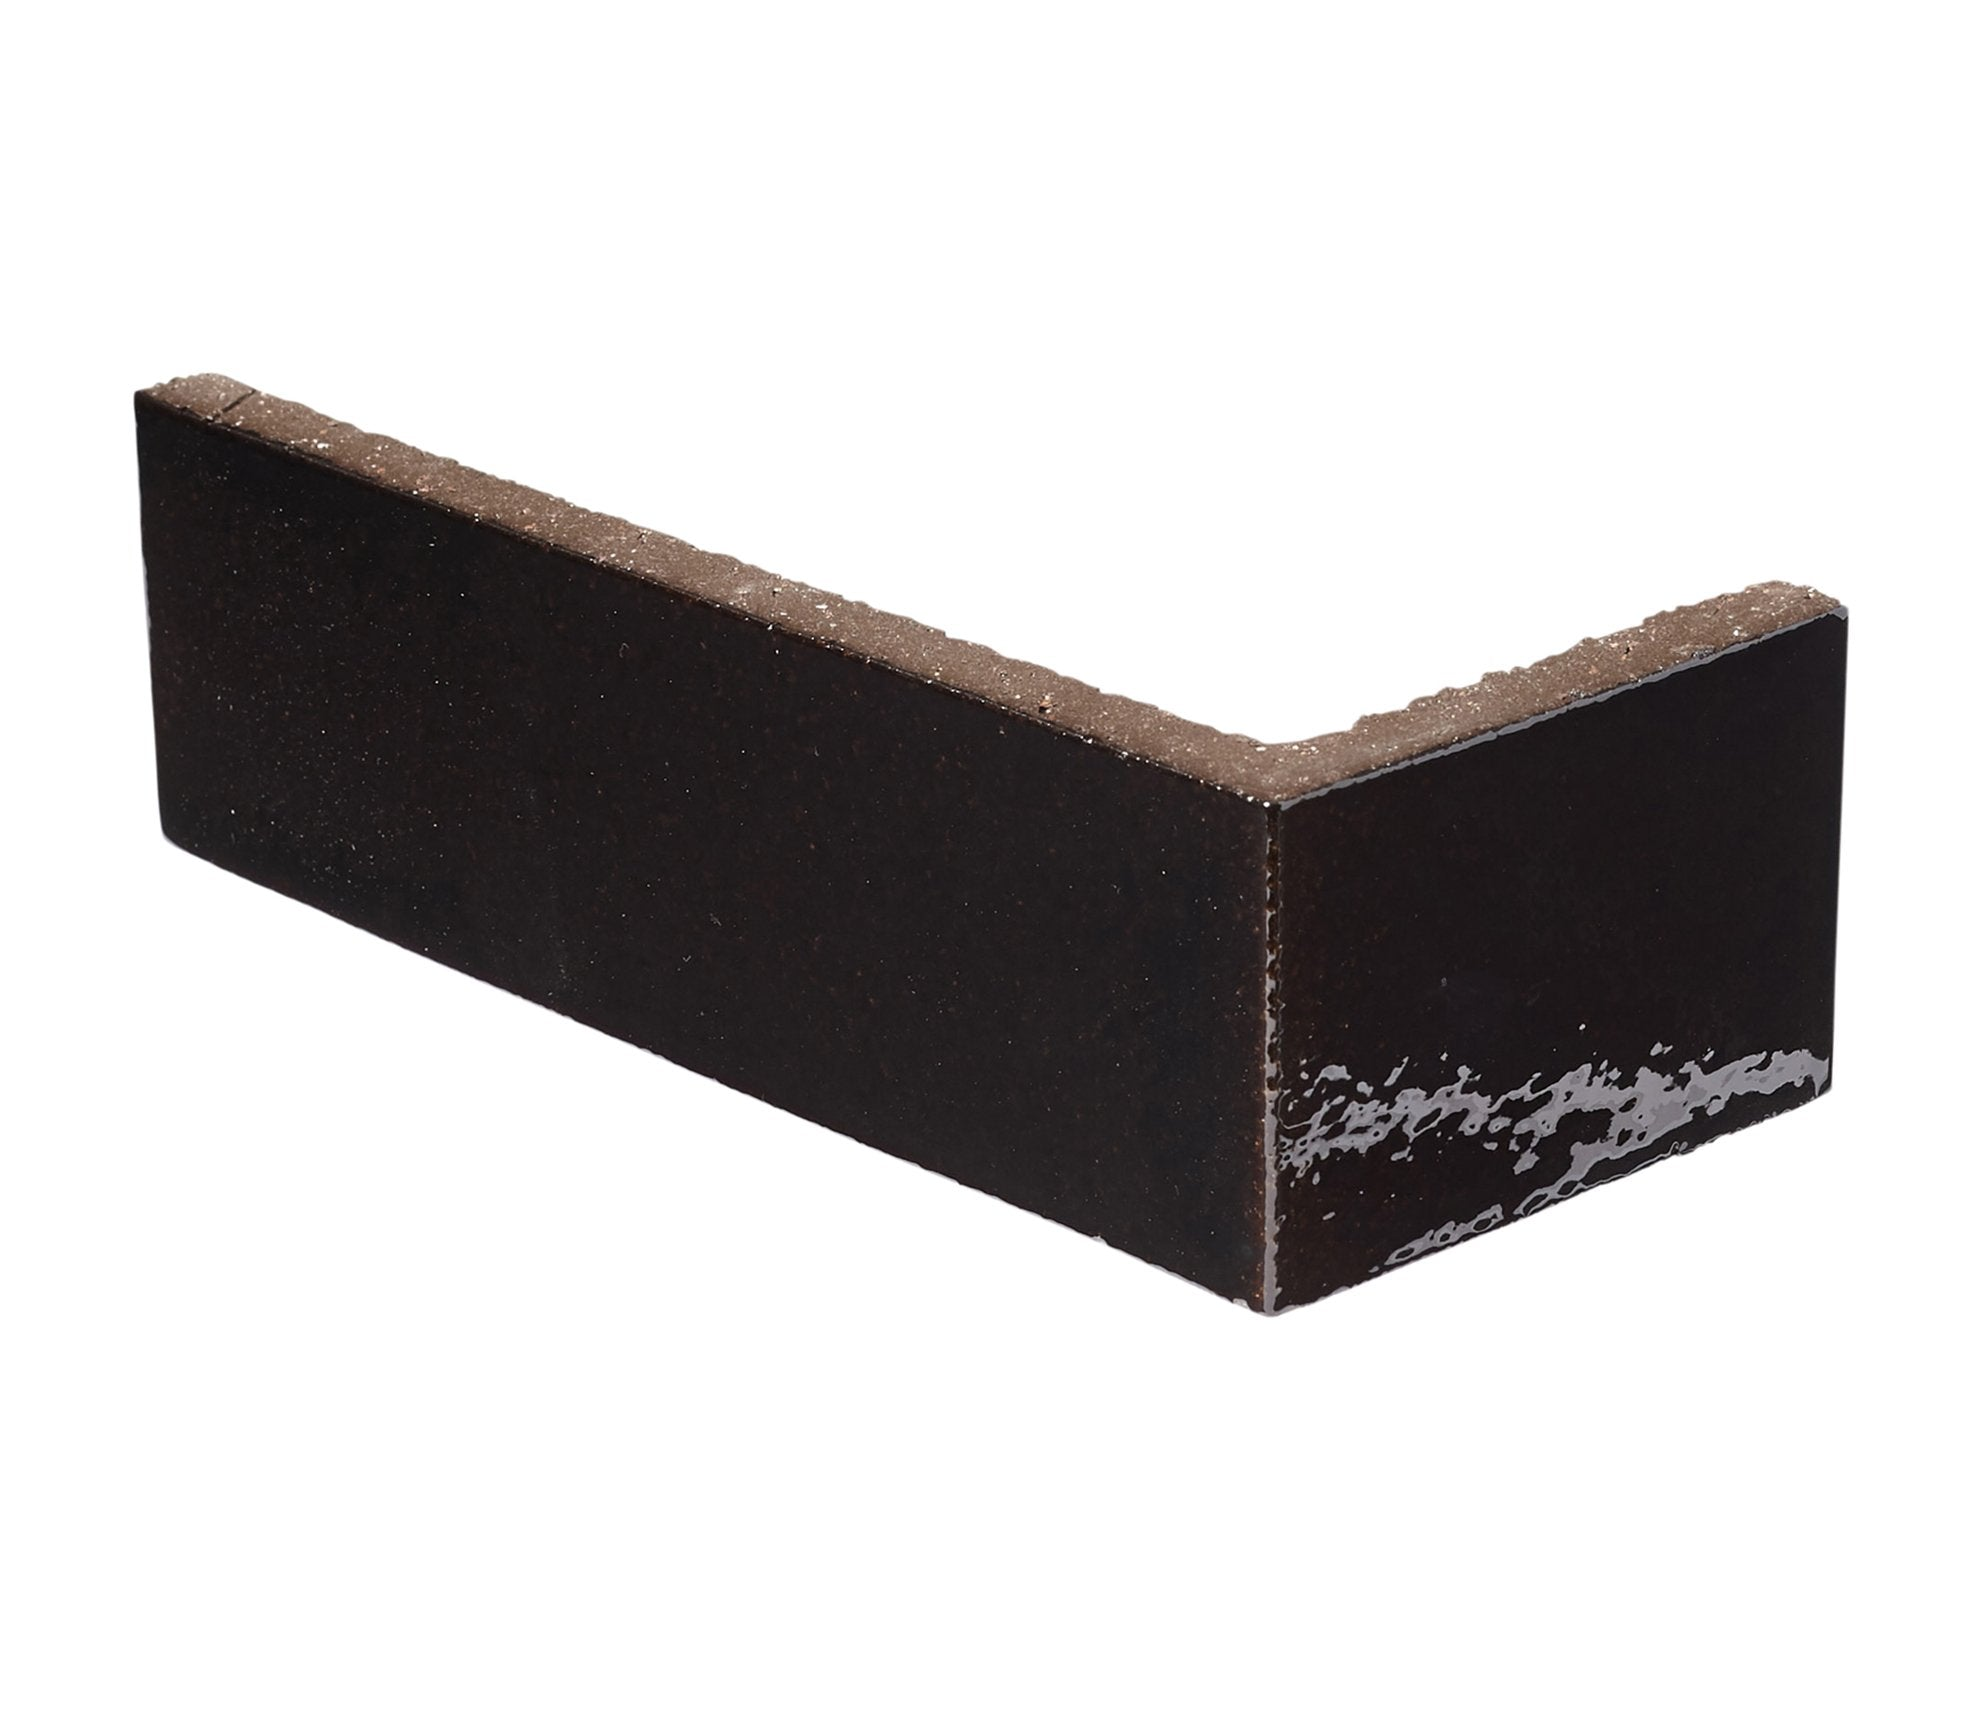 Terra Firma Glazed Bricks Product Image 31